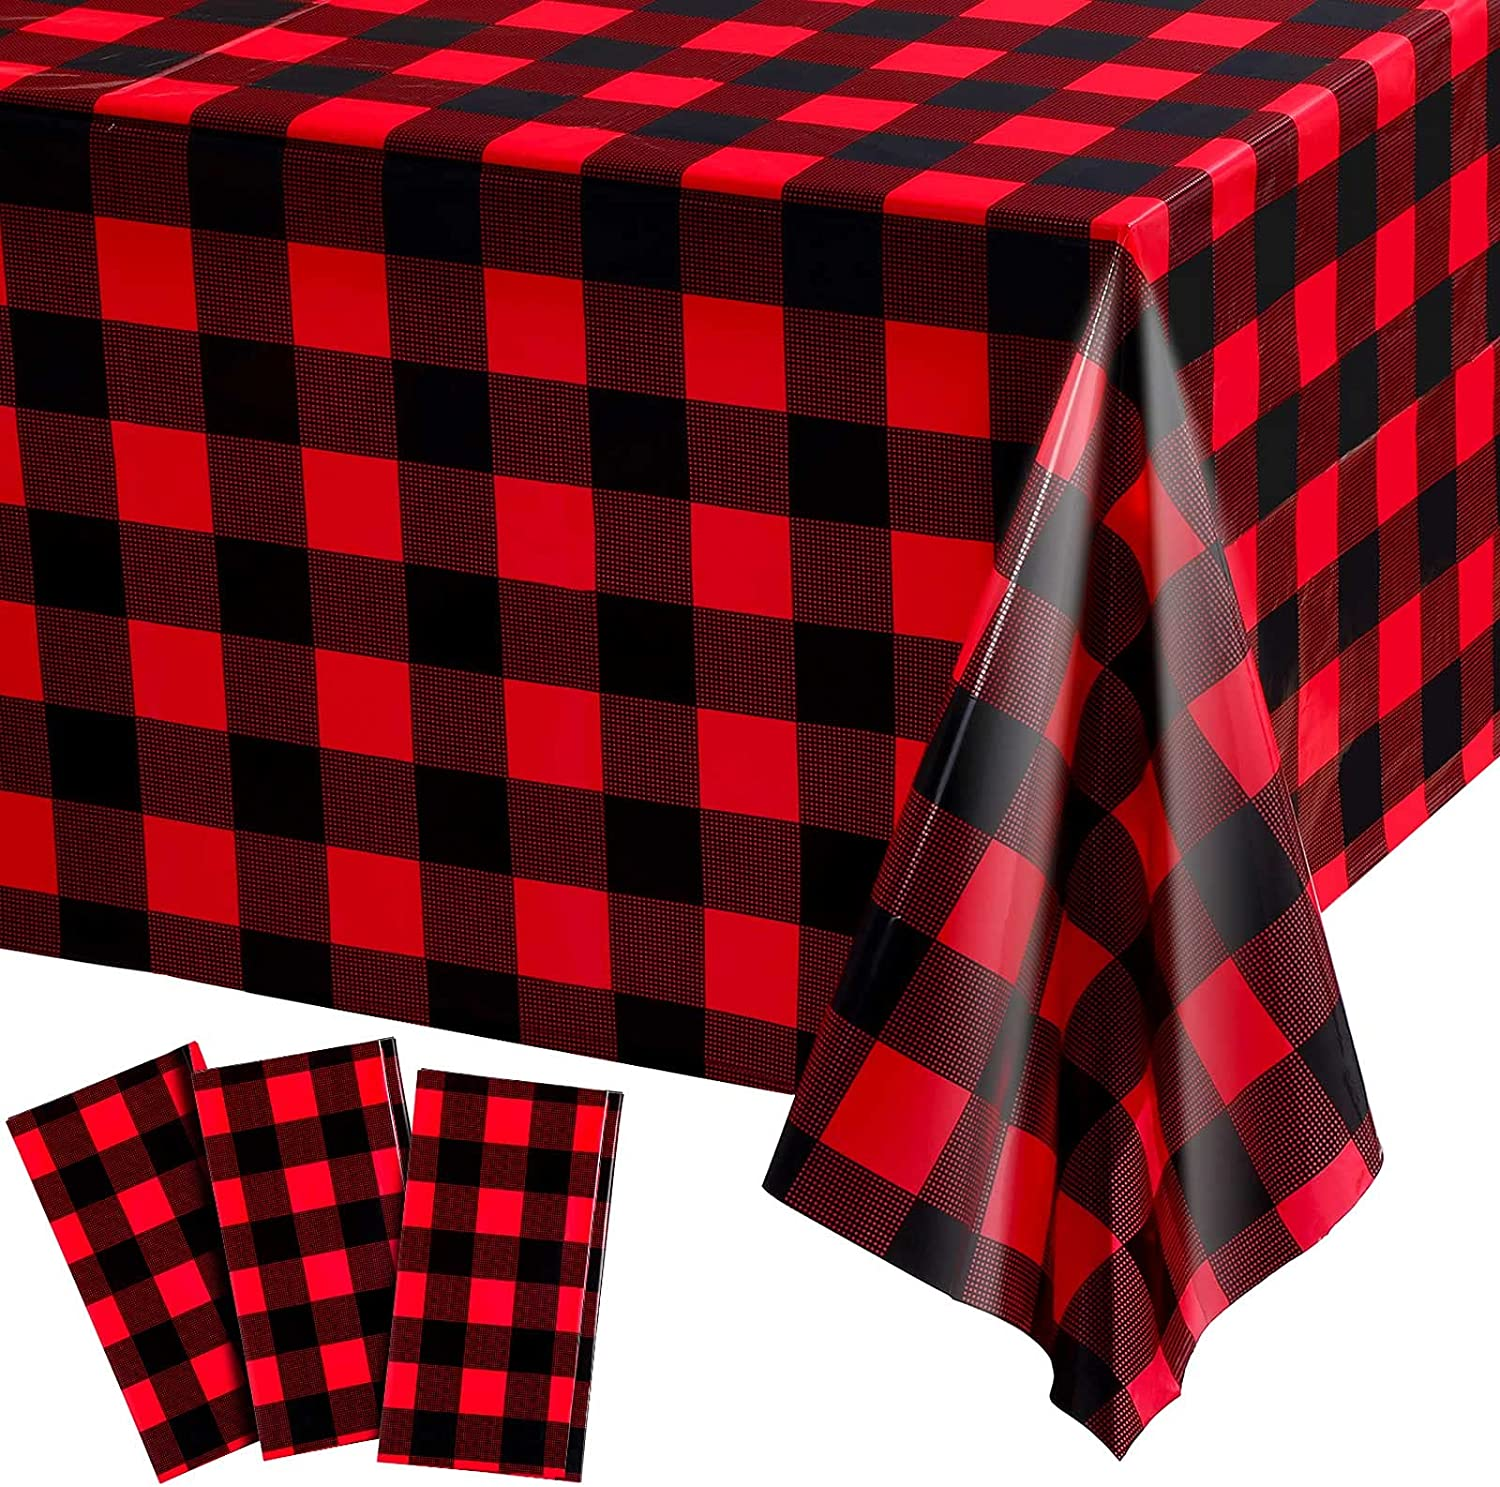 3 Pack Buffalo Plaid Table Covers, Red and Black Lumberjack Checkered Tablecloth Plastic Gingham Table Cover Disposable Christmas Table Cloth for Picnic, Camping, Holiday Table Decor, 108 x 54 Inch